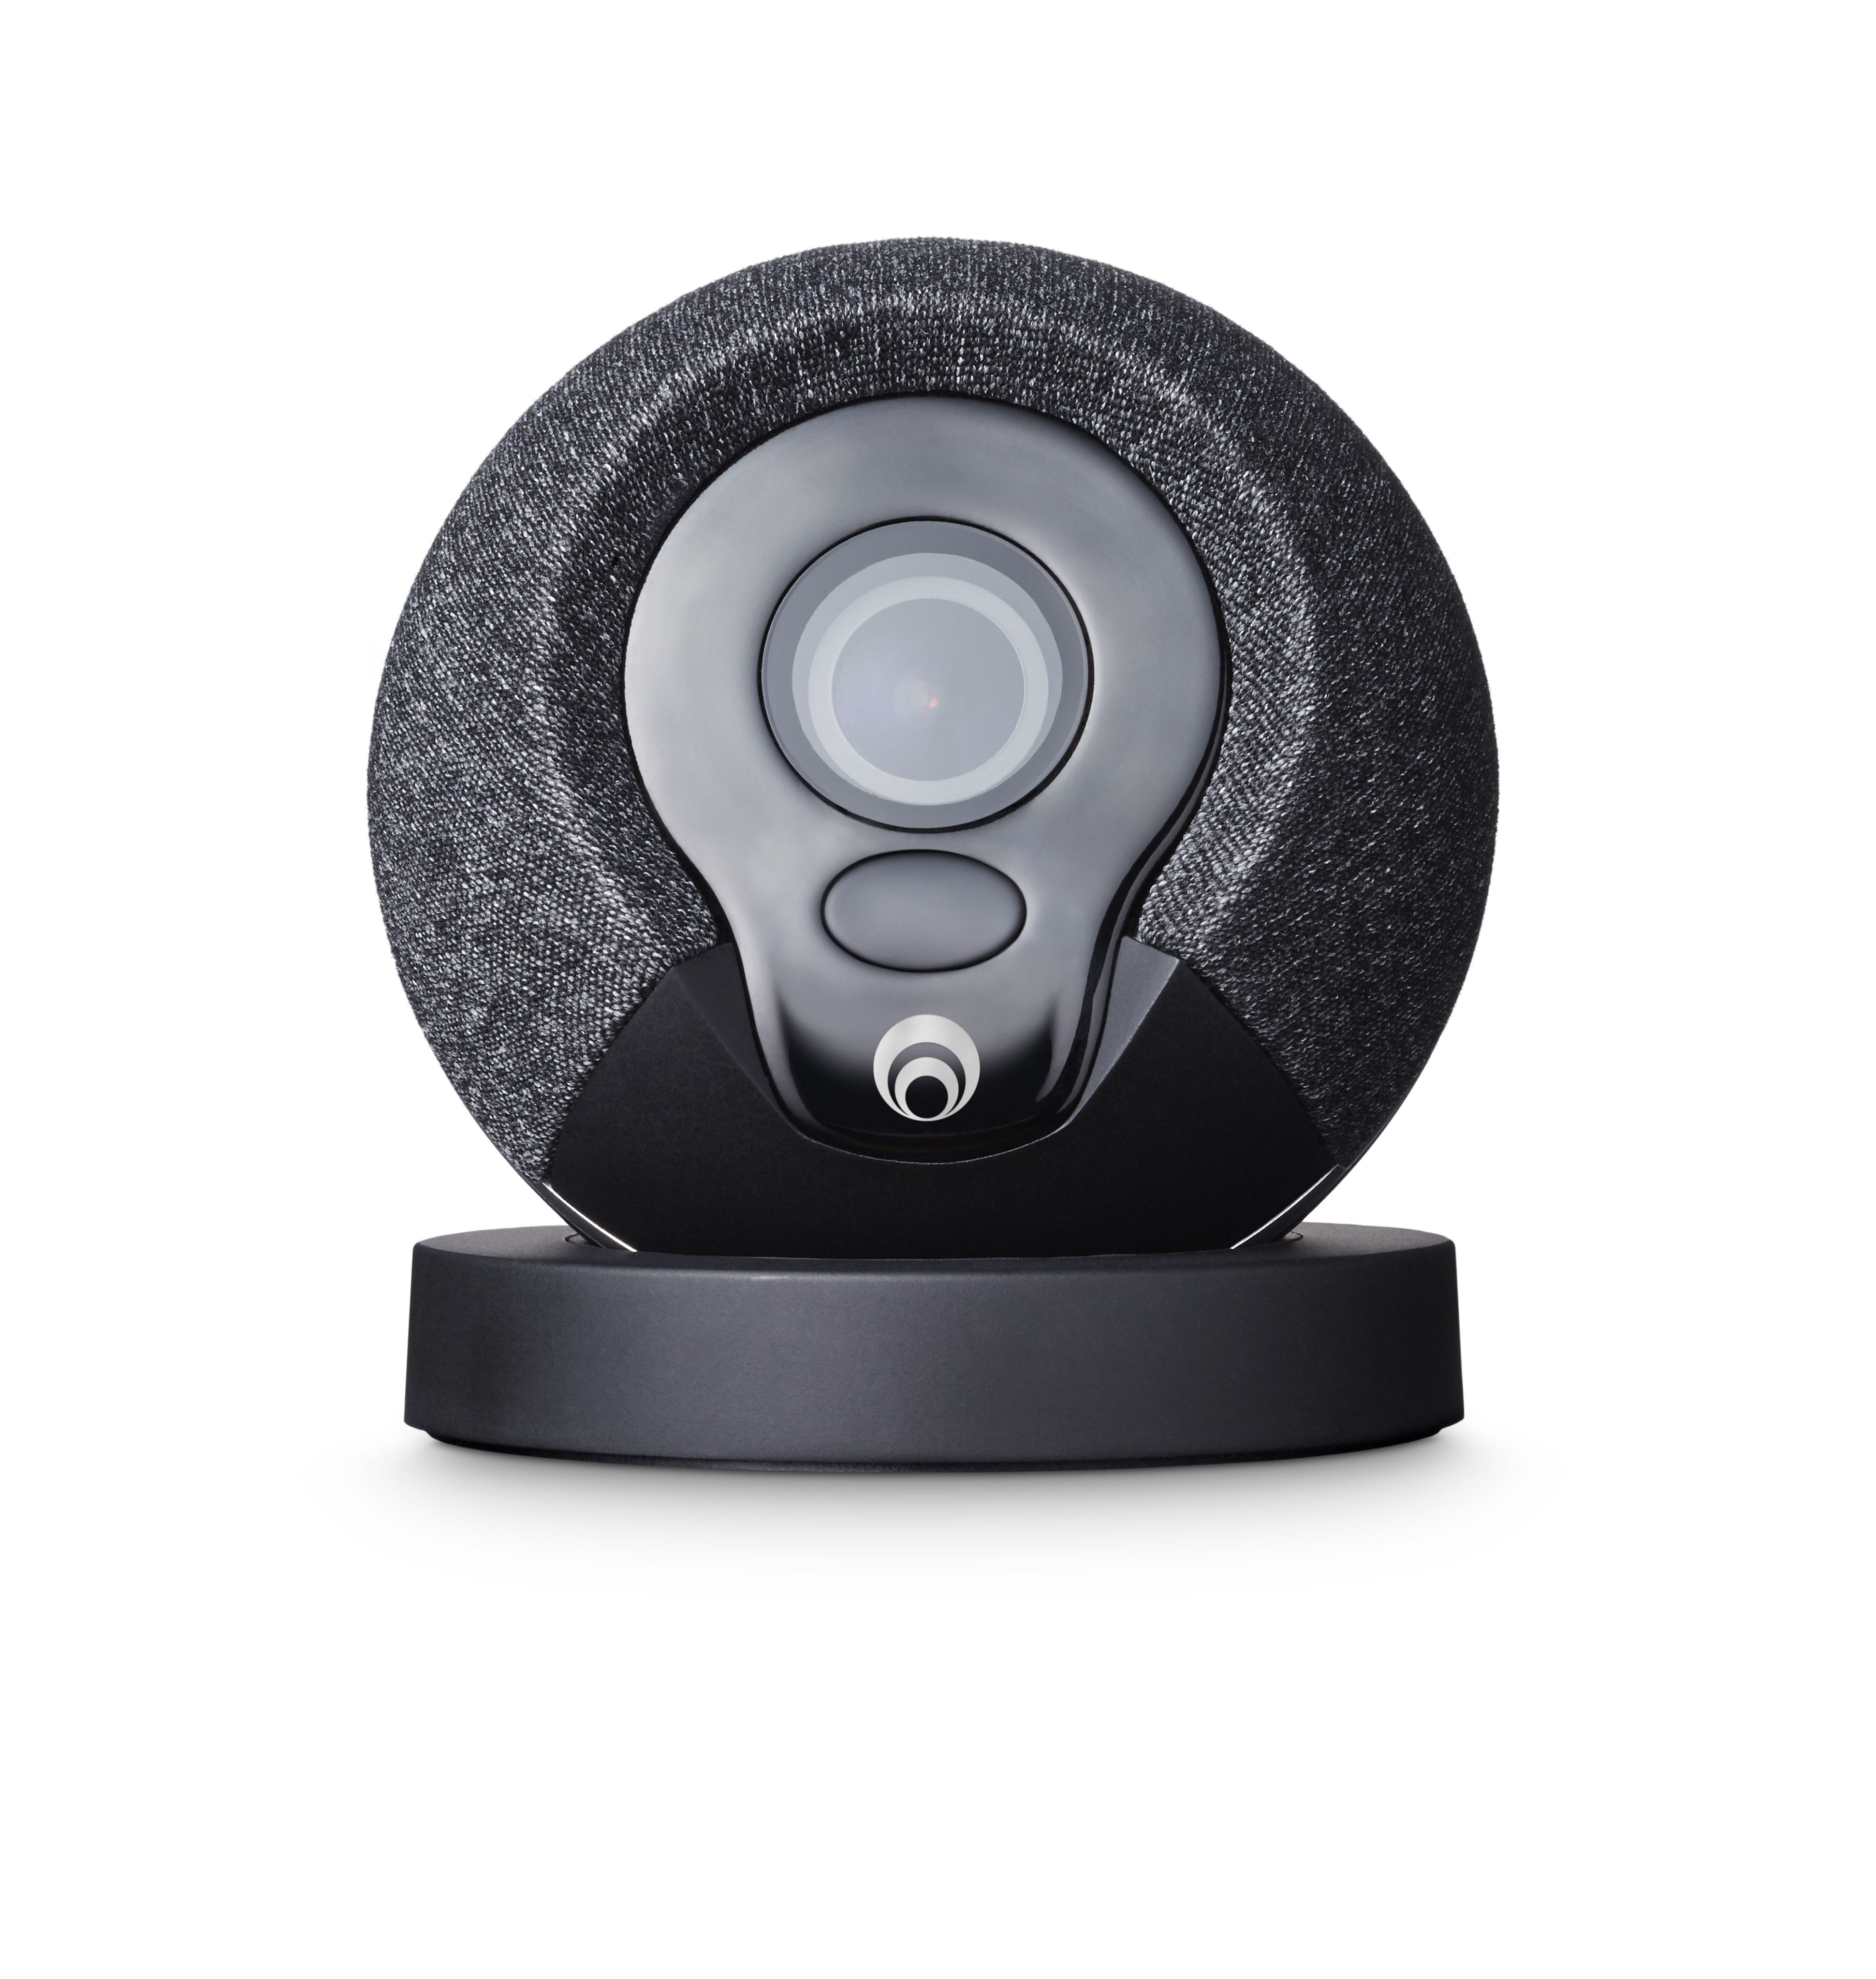 Cocoon home security device